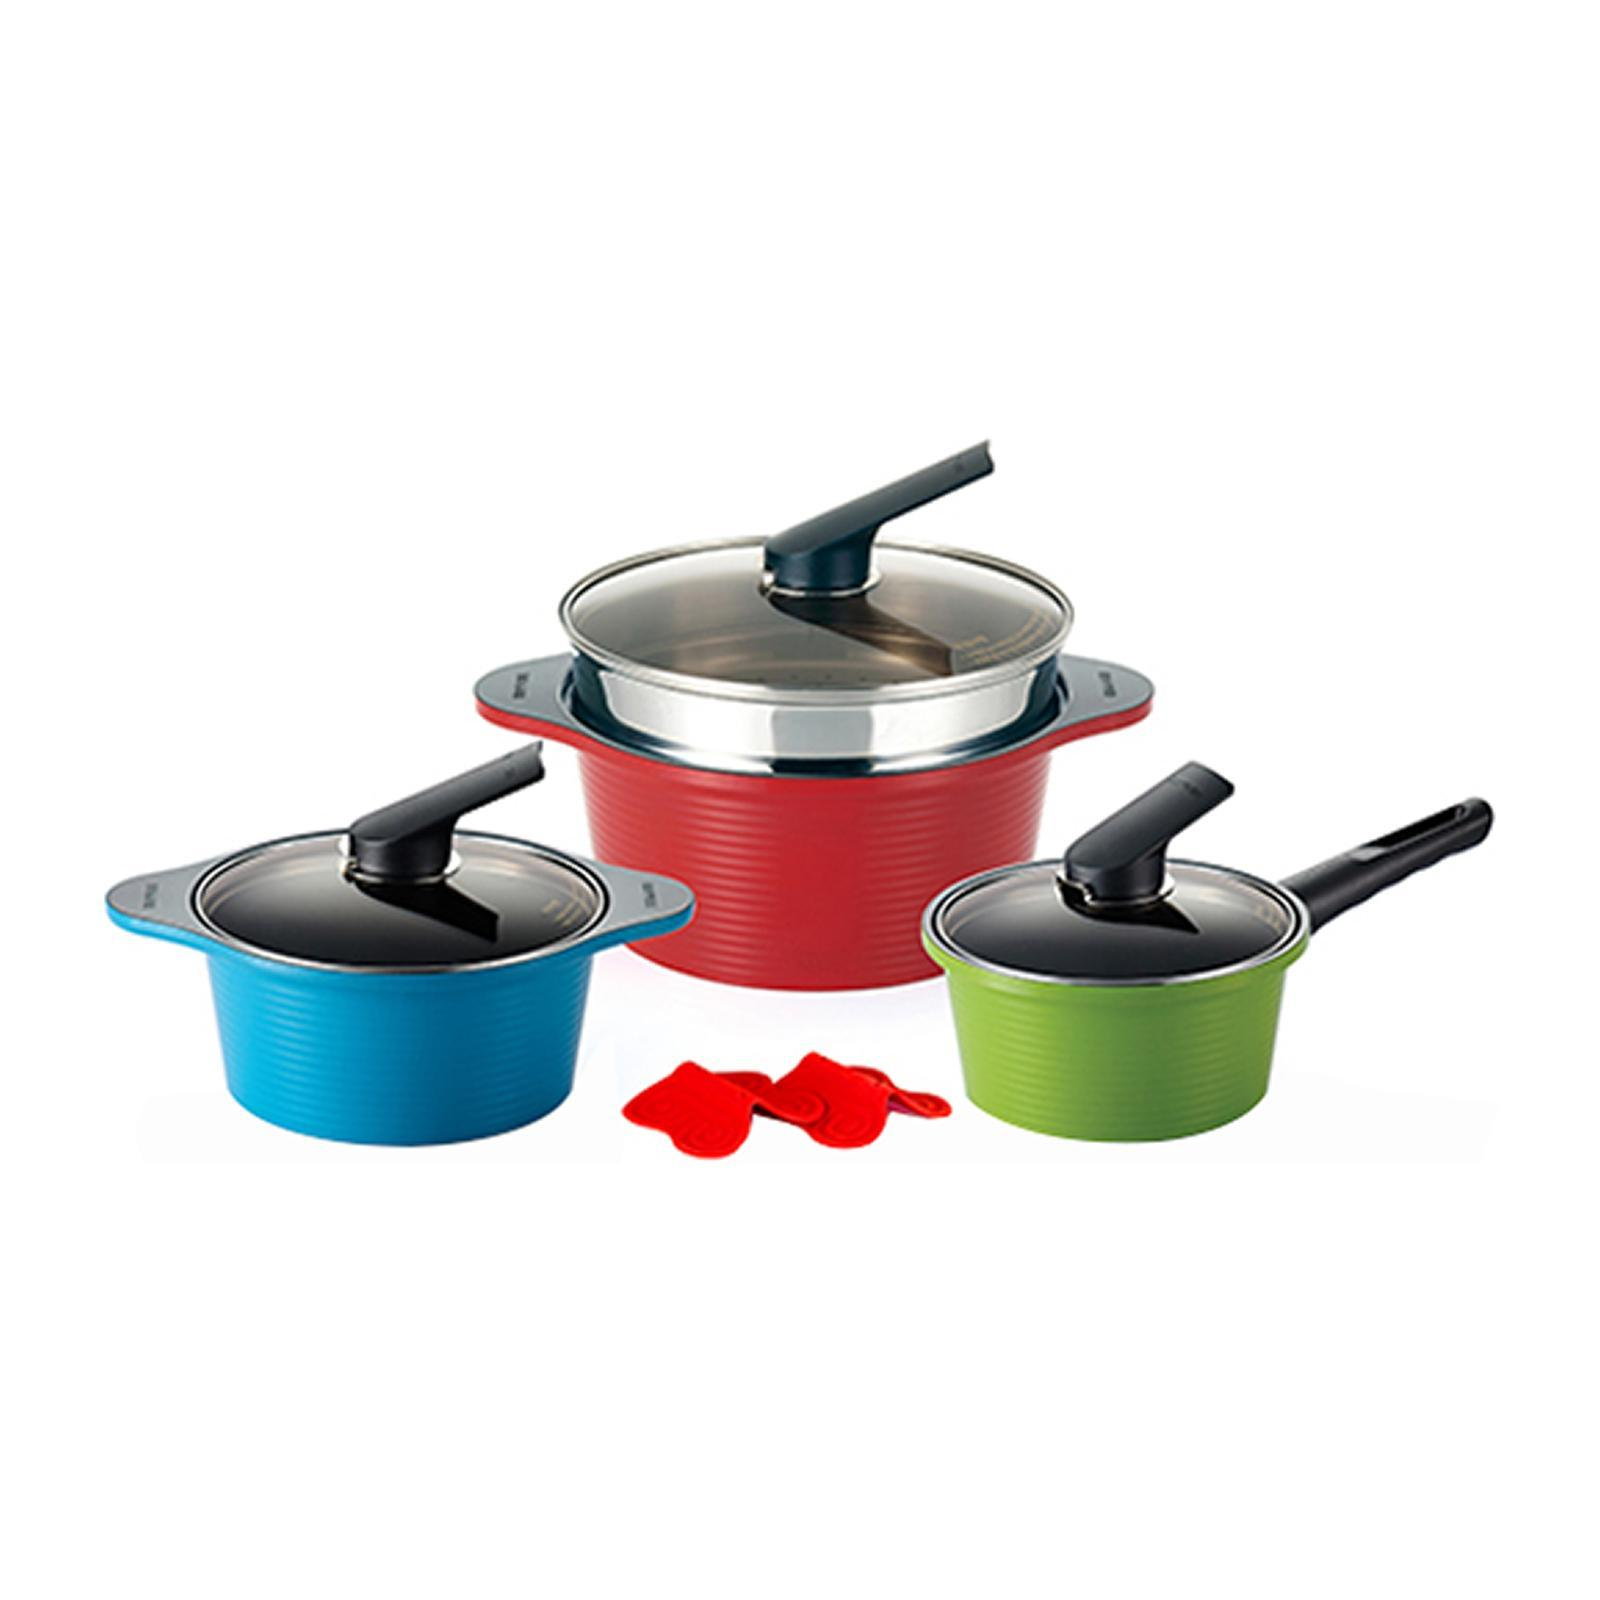 Happycall Alunite Die-Cast Pots (3 PCS Set) 28 CM Steamer / Silicone Pot Holder (2PCS) / Saucepan 18 CM (Green) / Stock Pots 20 CM (Blue) And 28 CM Red - By ToTT